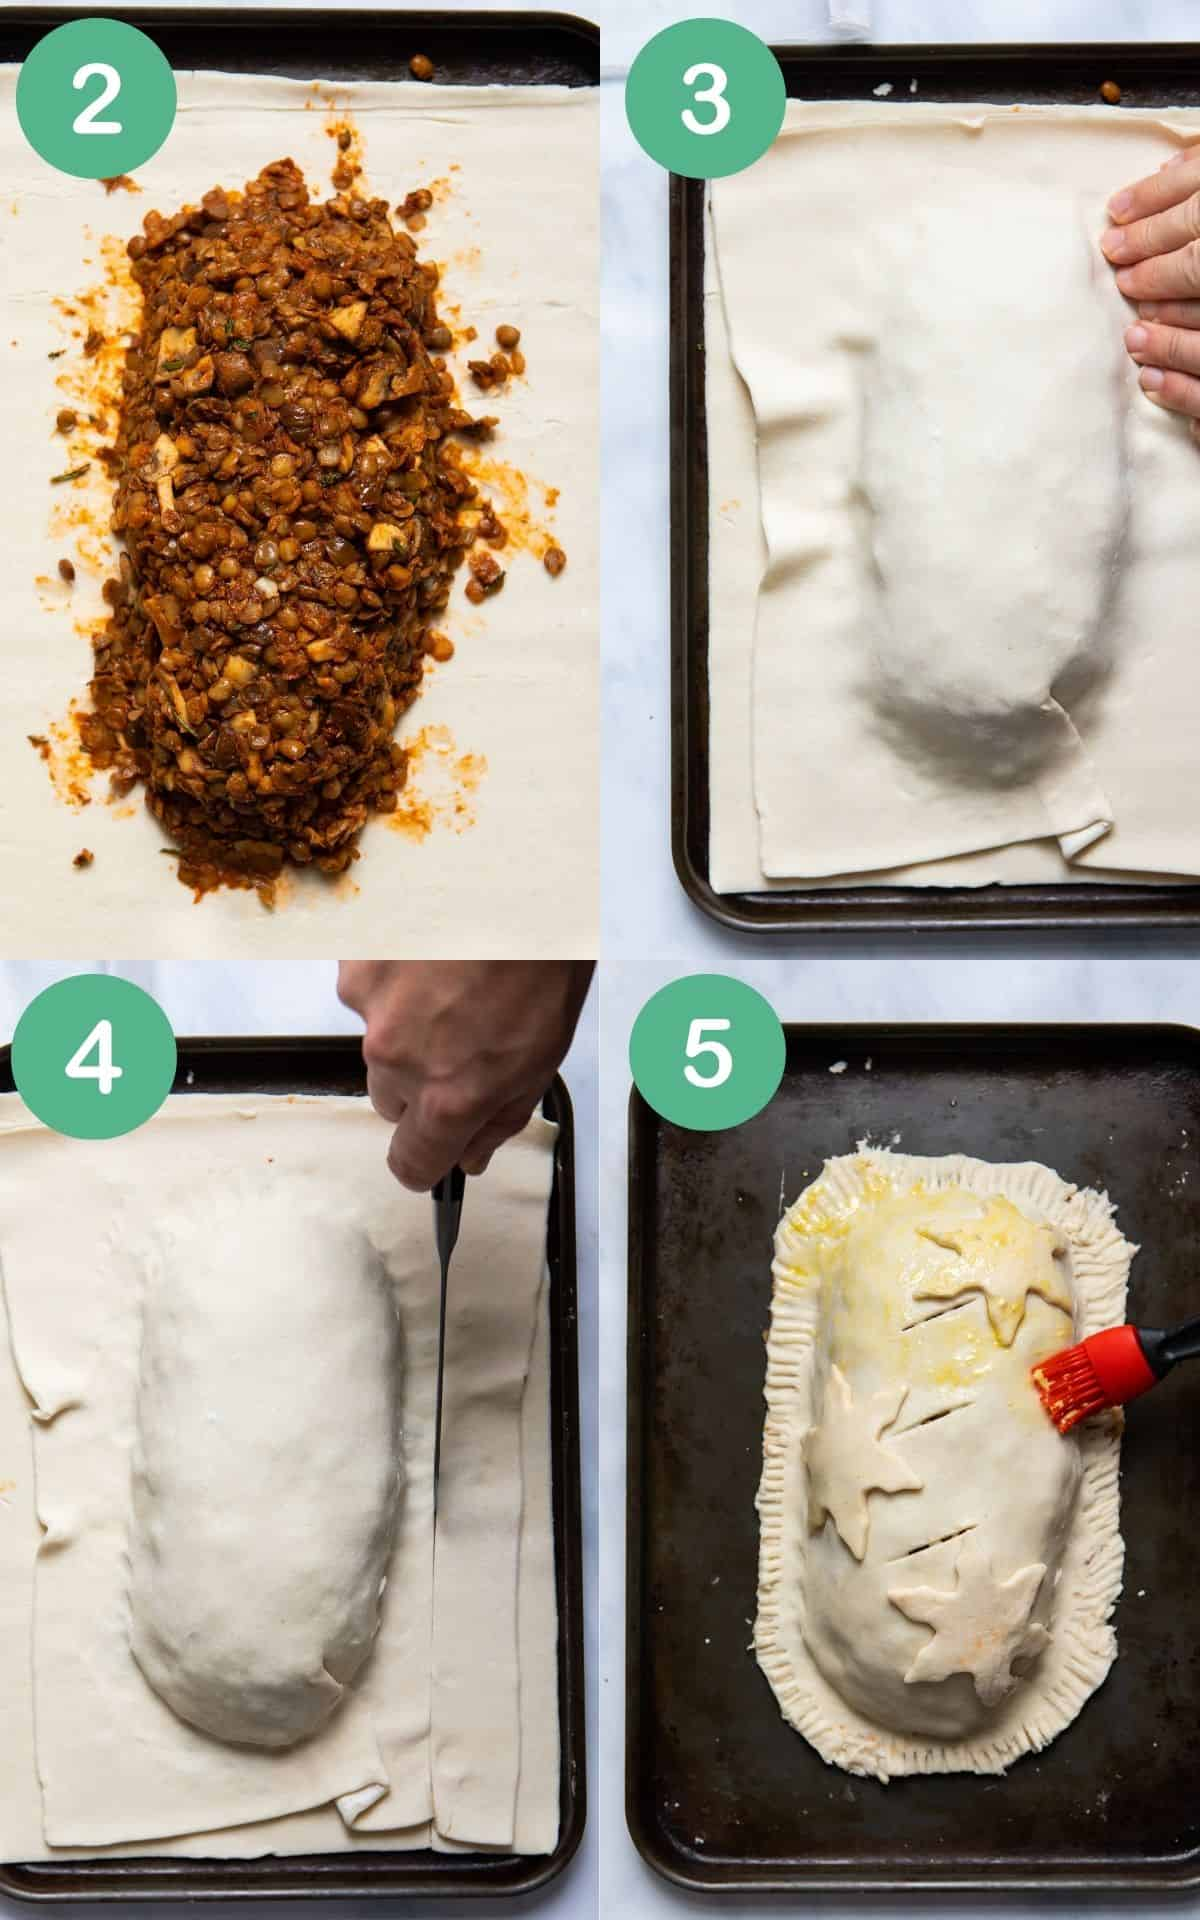 instructional step by step images of how to place the filling in a puff pastry and wrapped and prepared for baking.